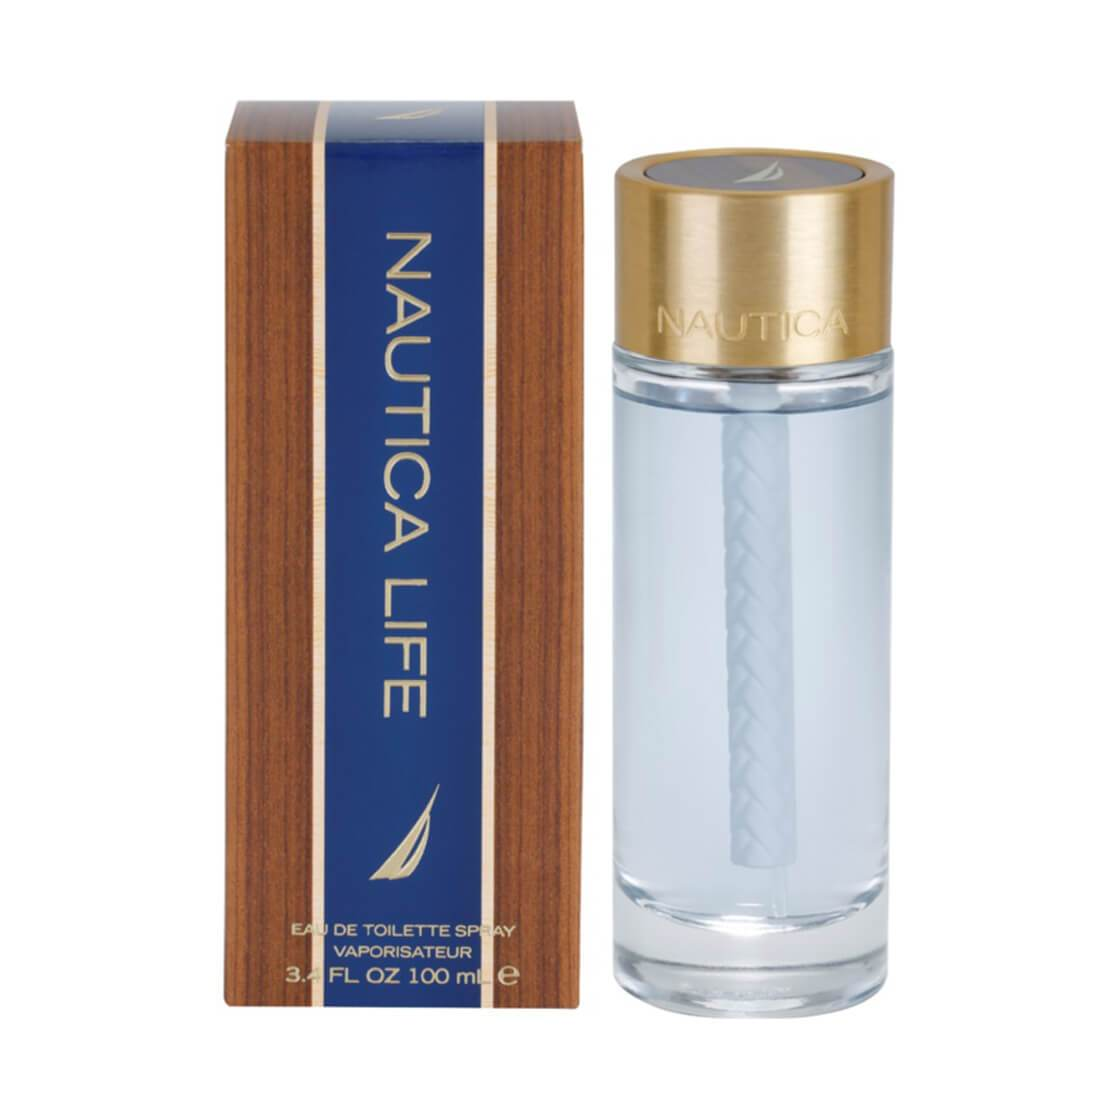 Nautica Life Eau De Toilette For Men - 100ml